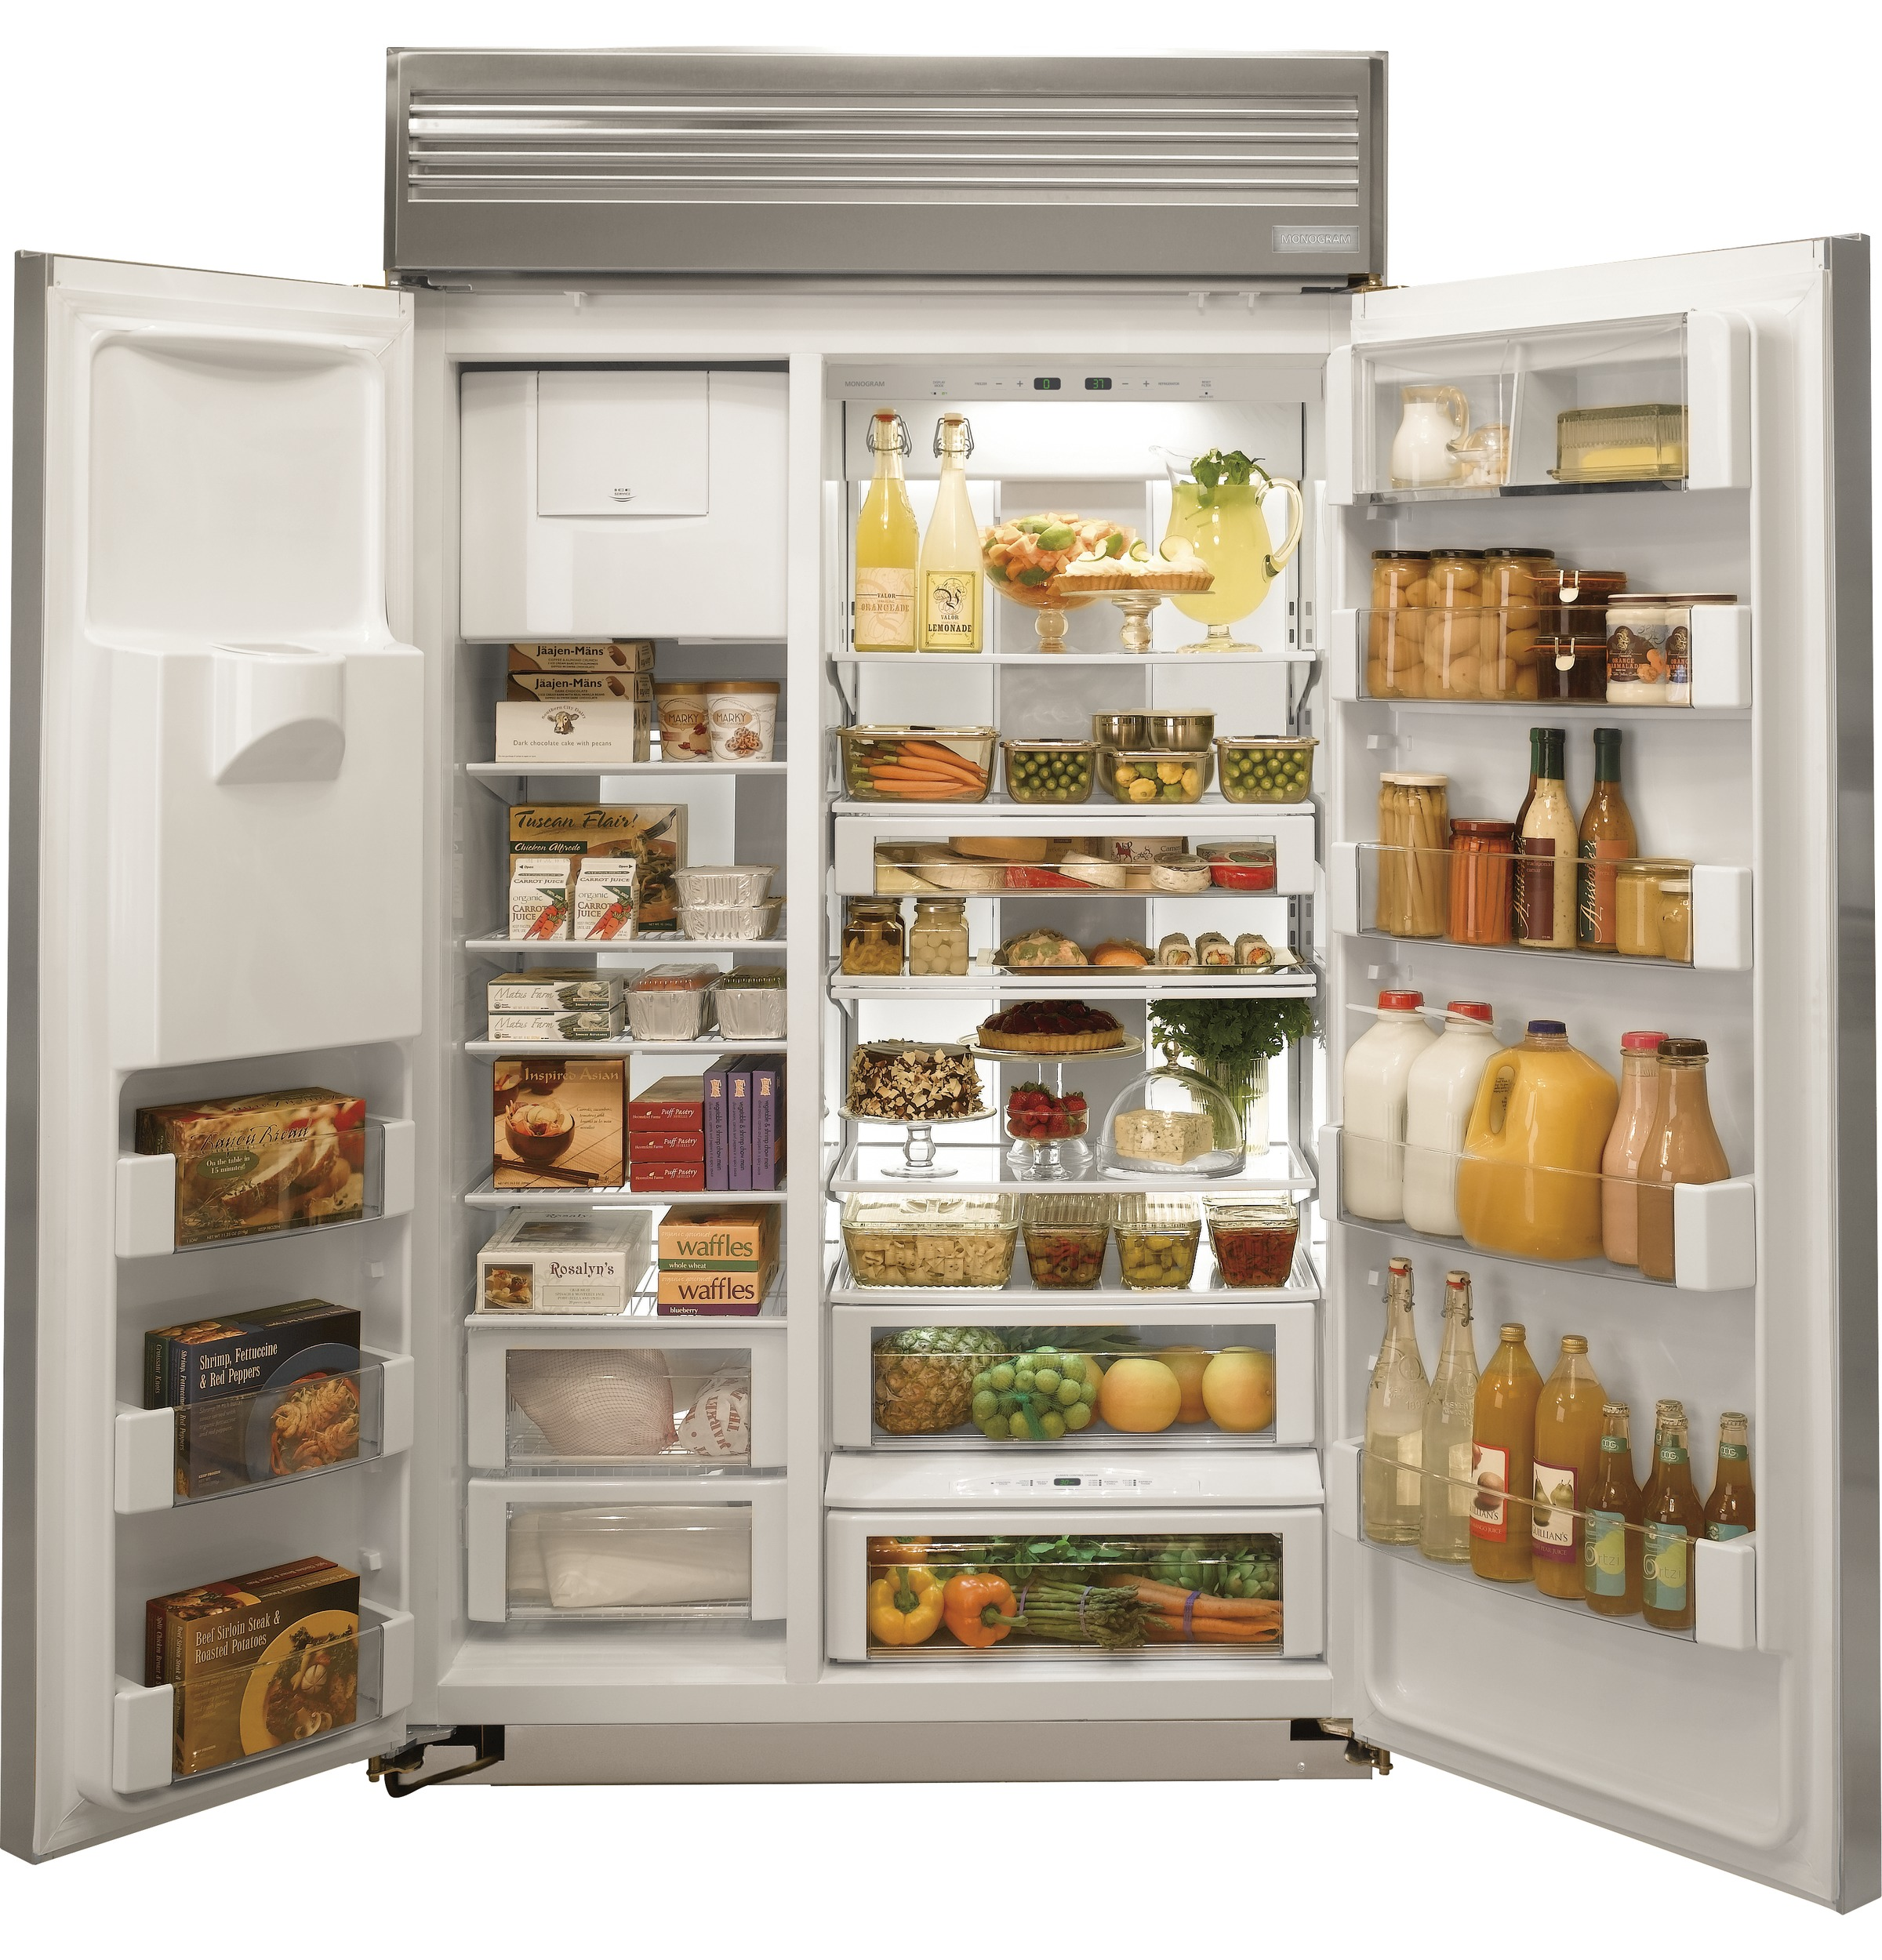 Commercial Refrigerators For Home Use Ge Monogramar 48 Built In Side By Side Refrigerator With Dispenser